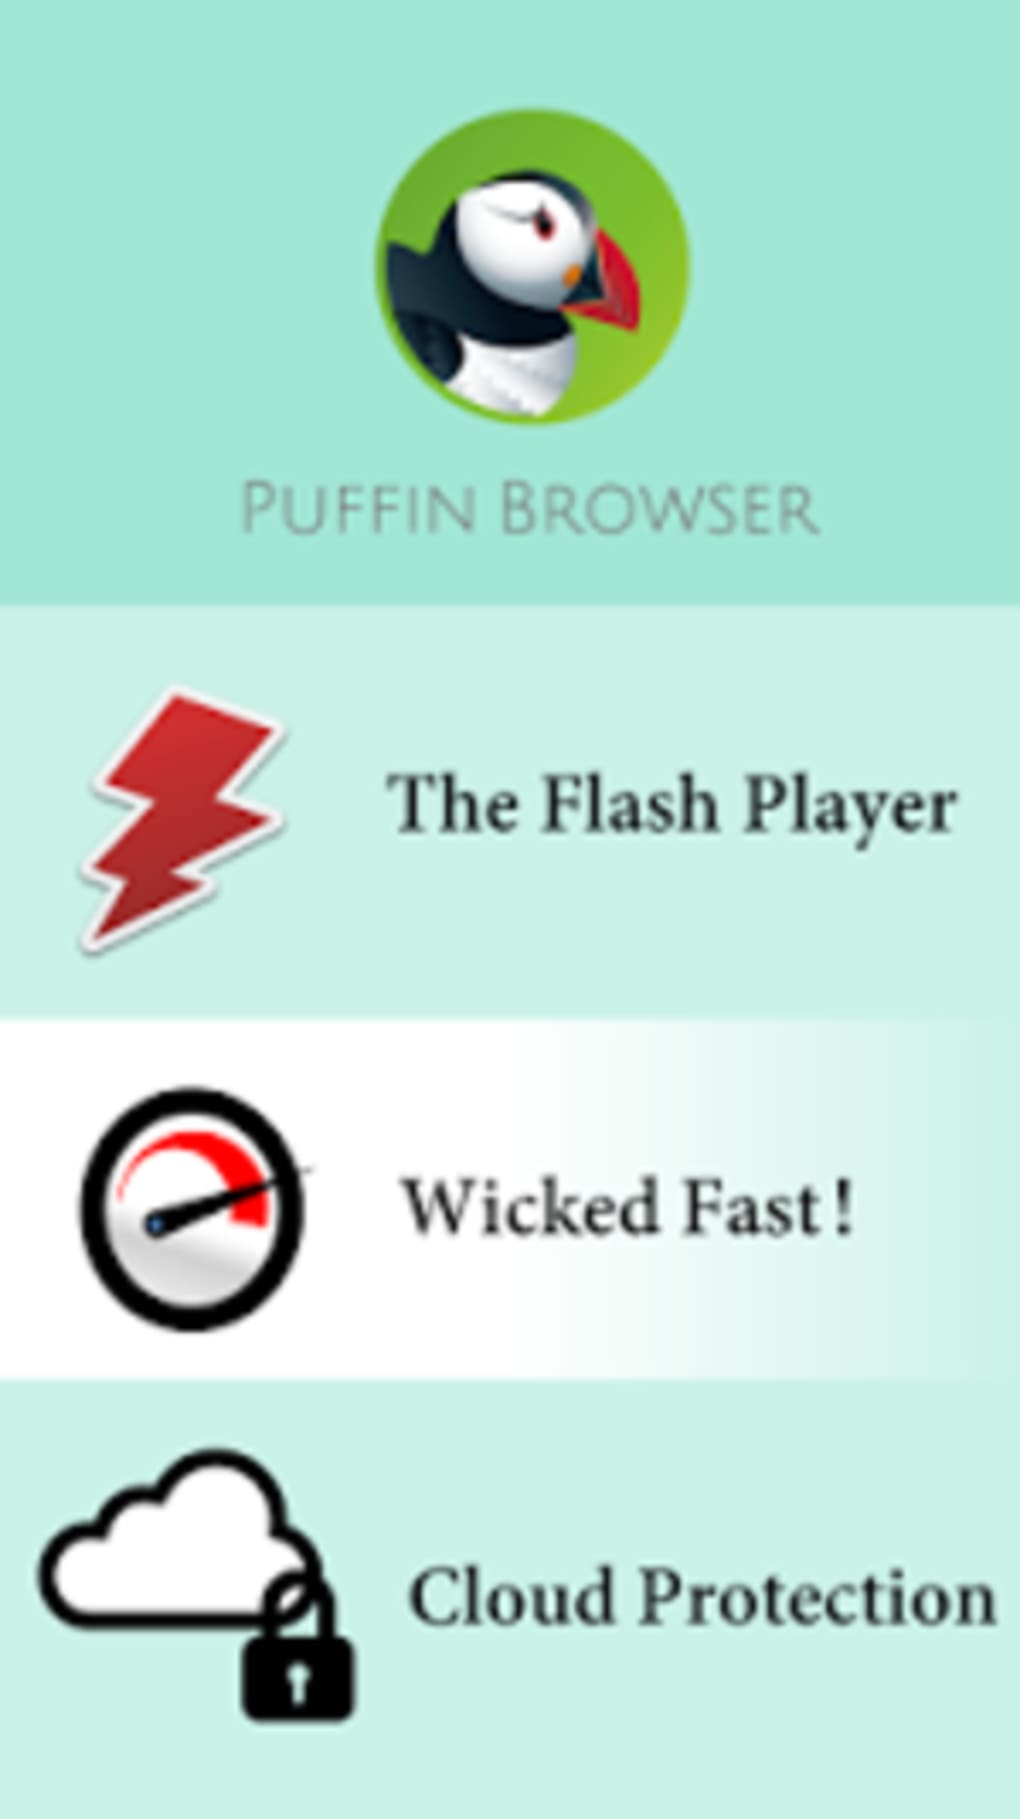 Puffin Web Browser for Android - Download